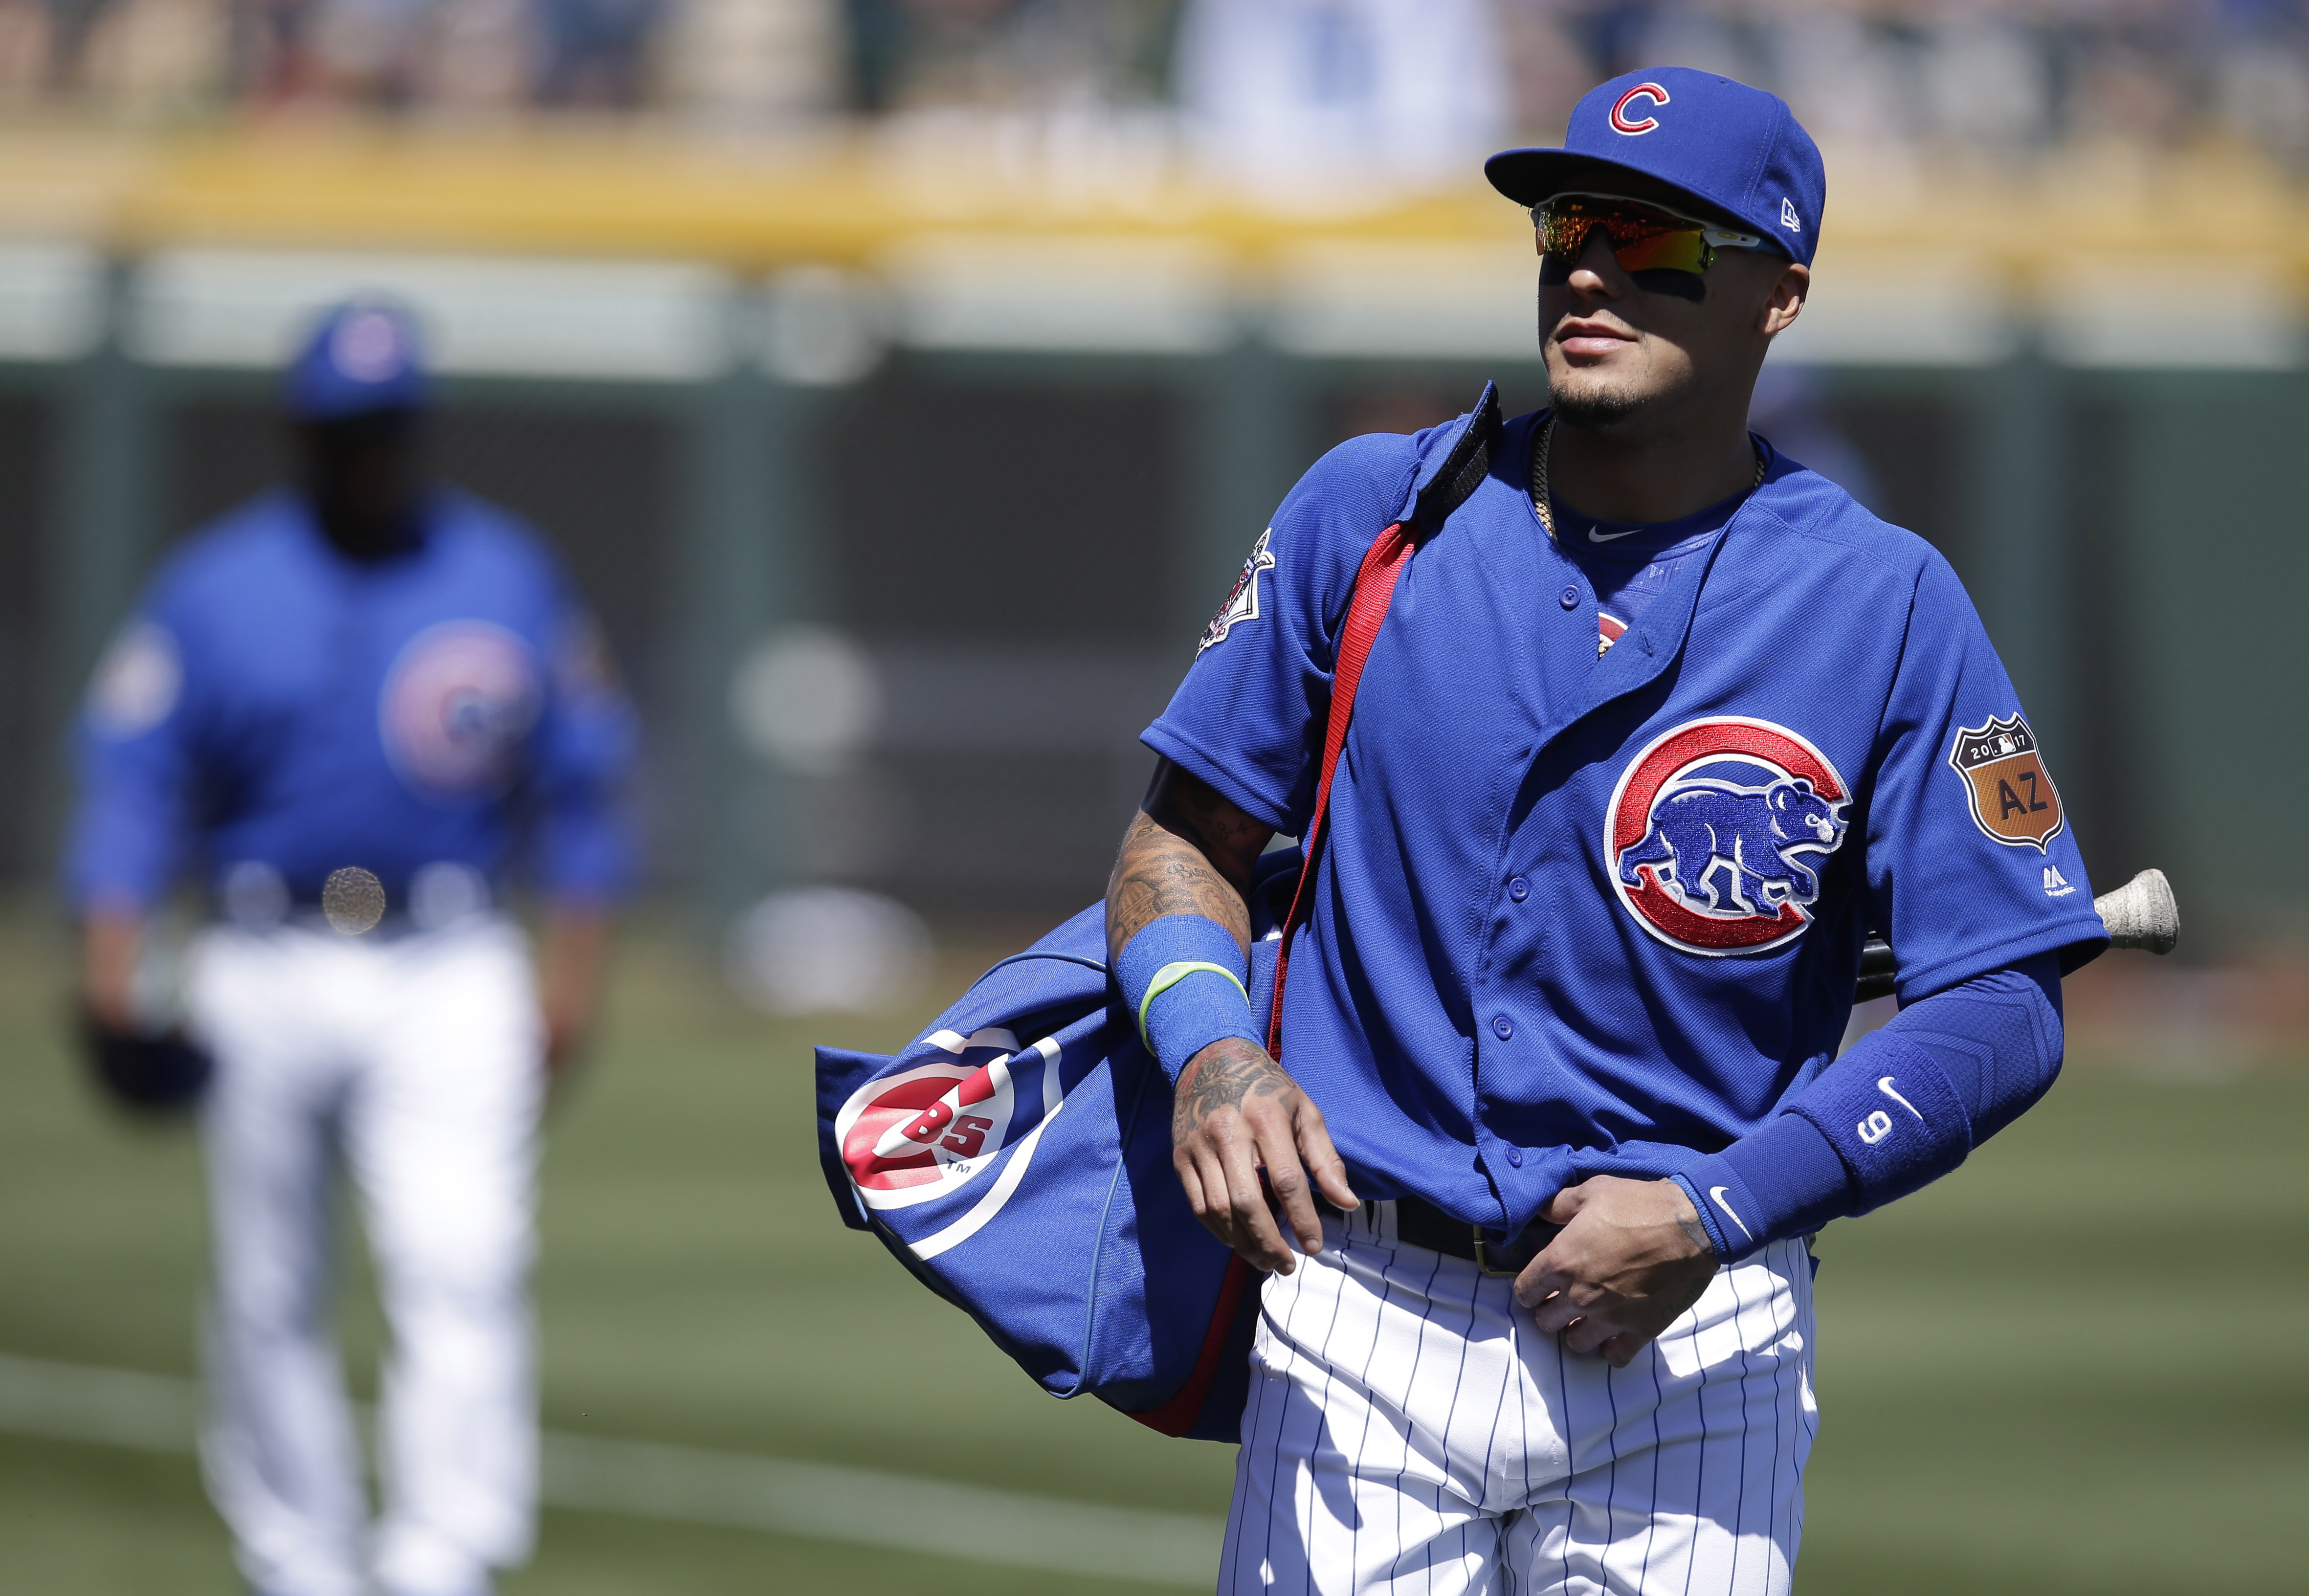 9977835-mlb-spring-training-san-francisco-giants-at-chicago-cubs